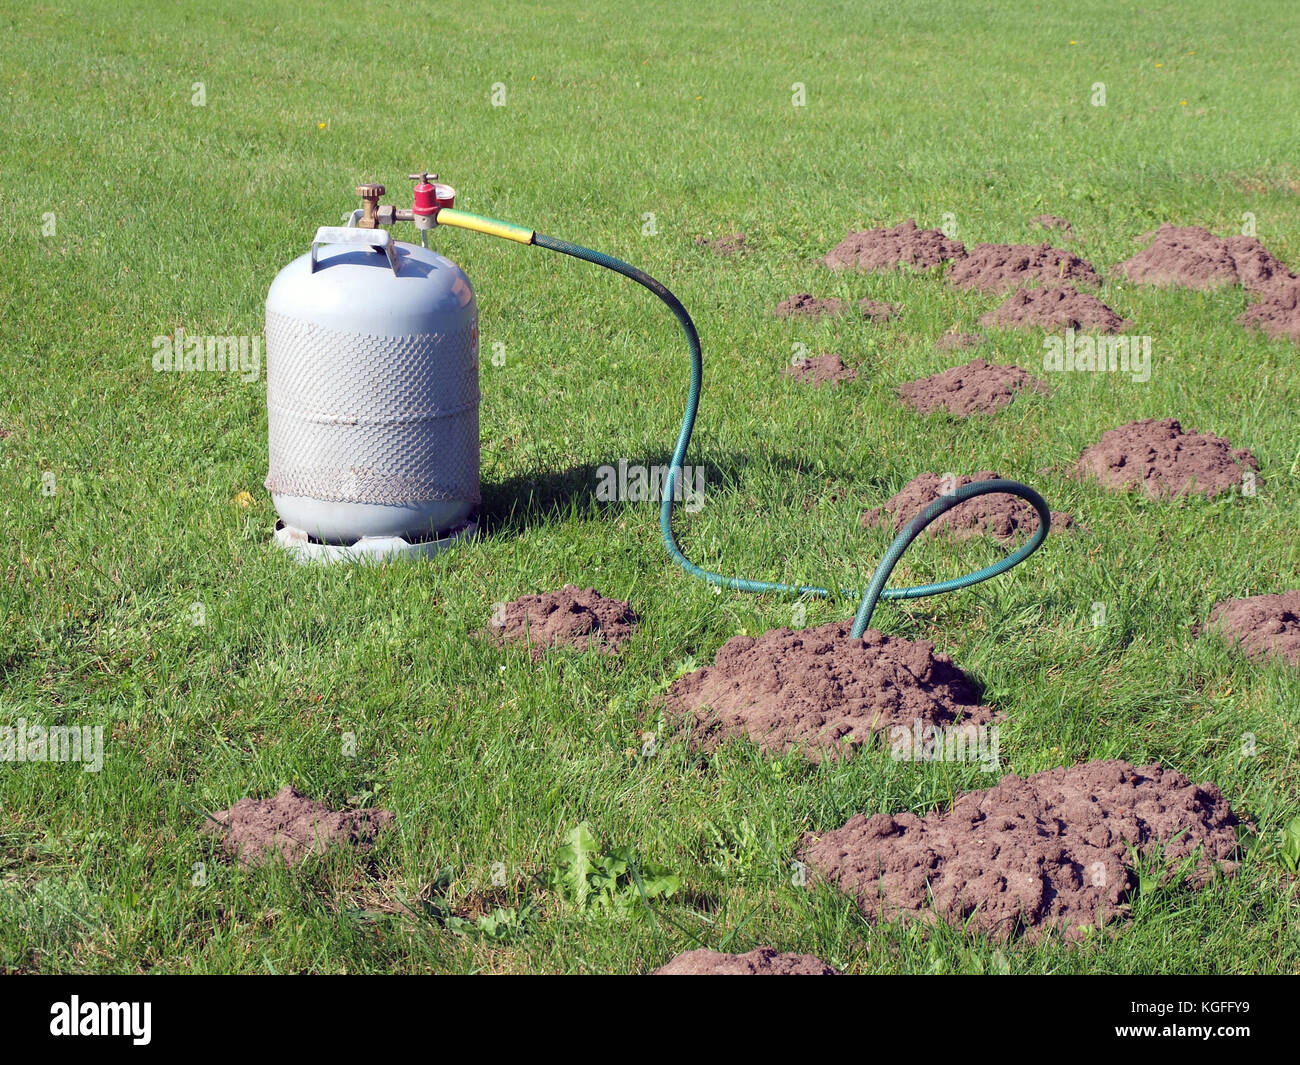 Filling mole hills with toxic gas from gas cylinder to kill them. - Stock Image